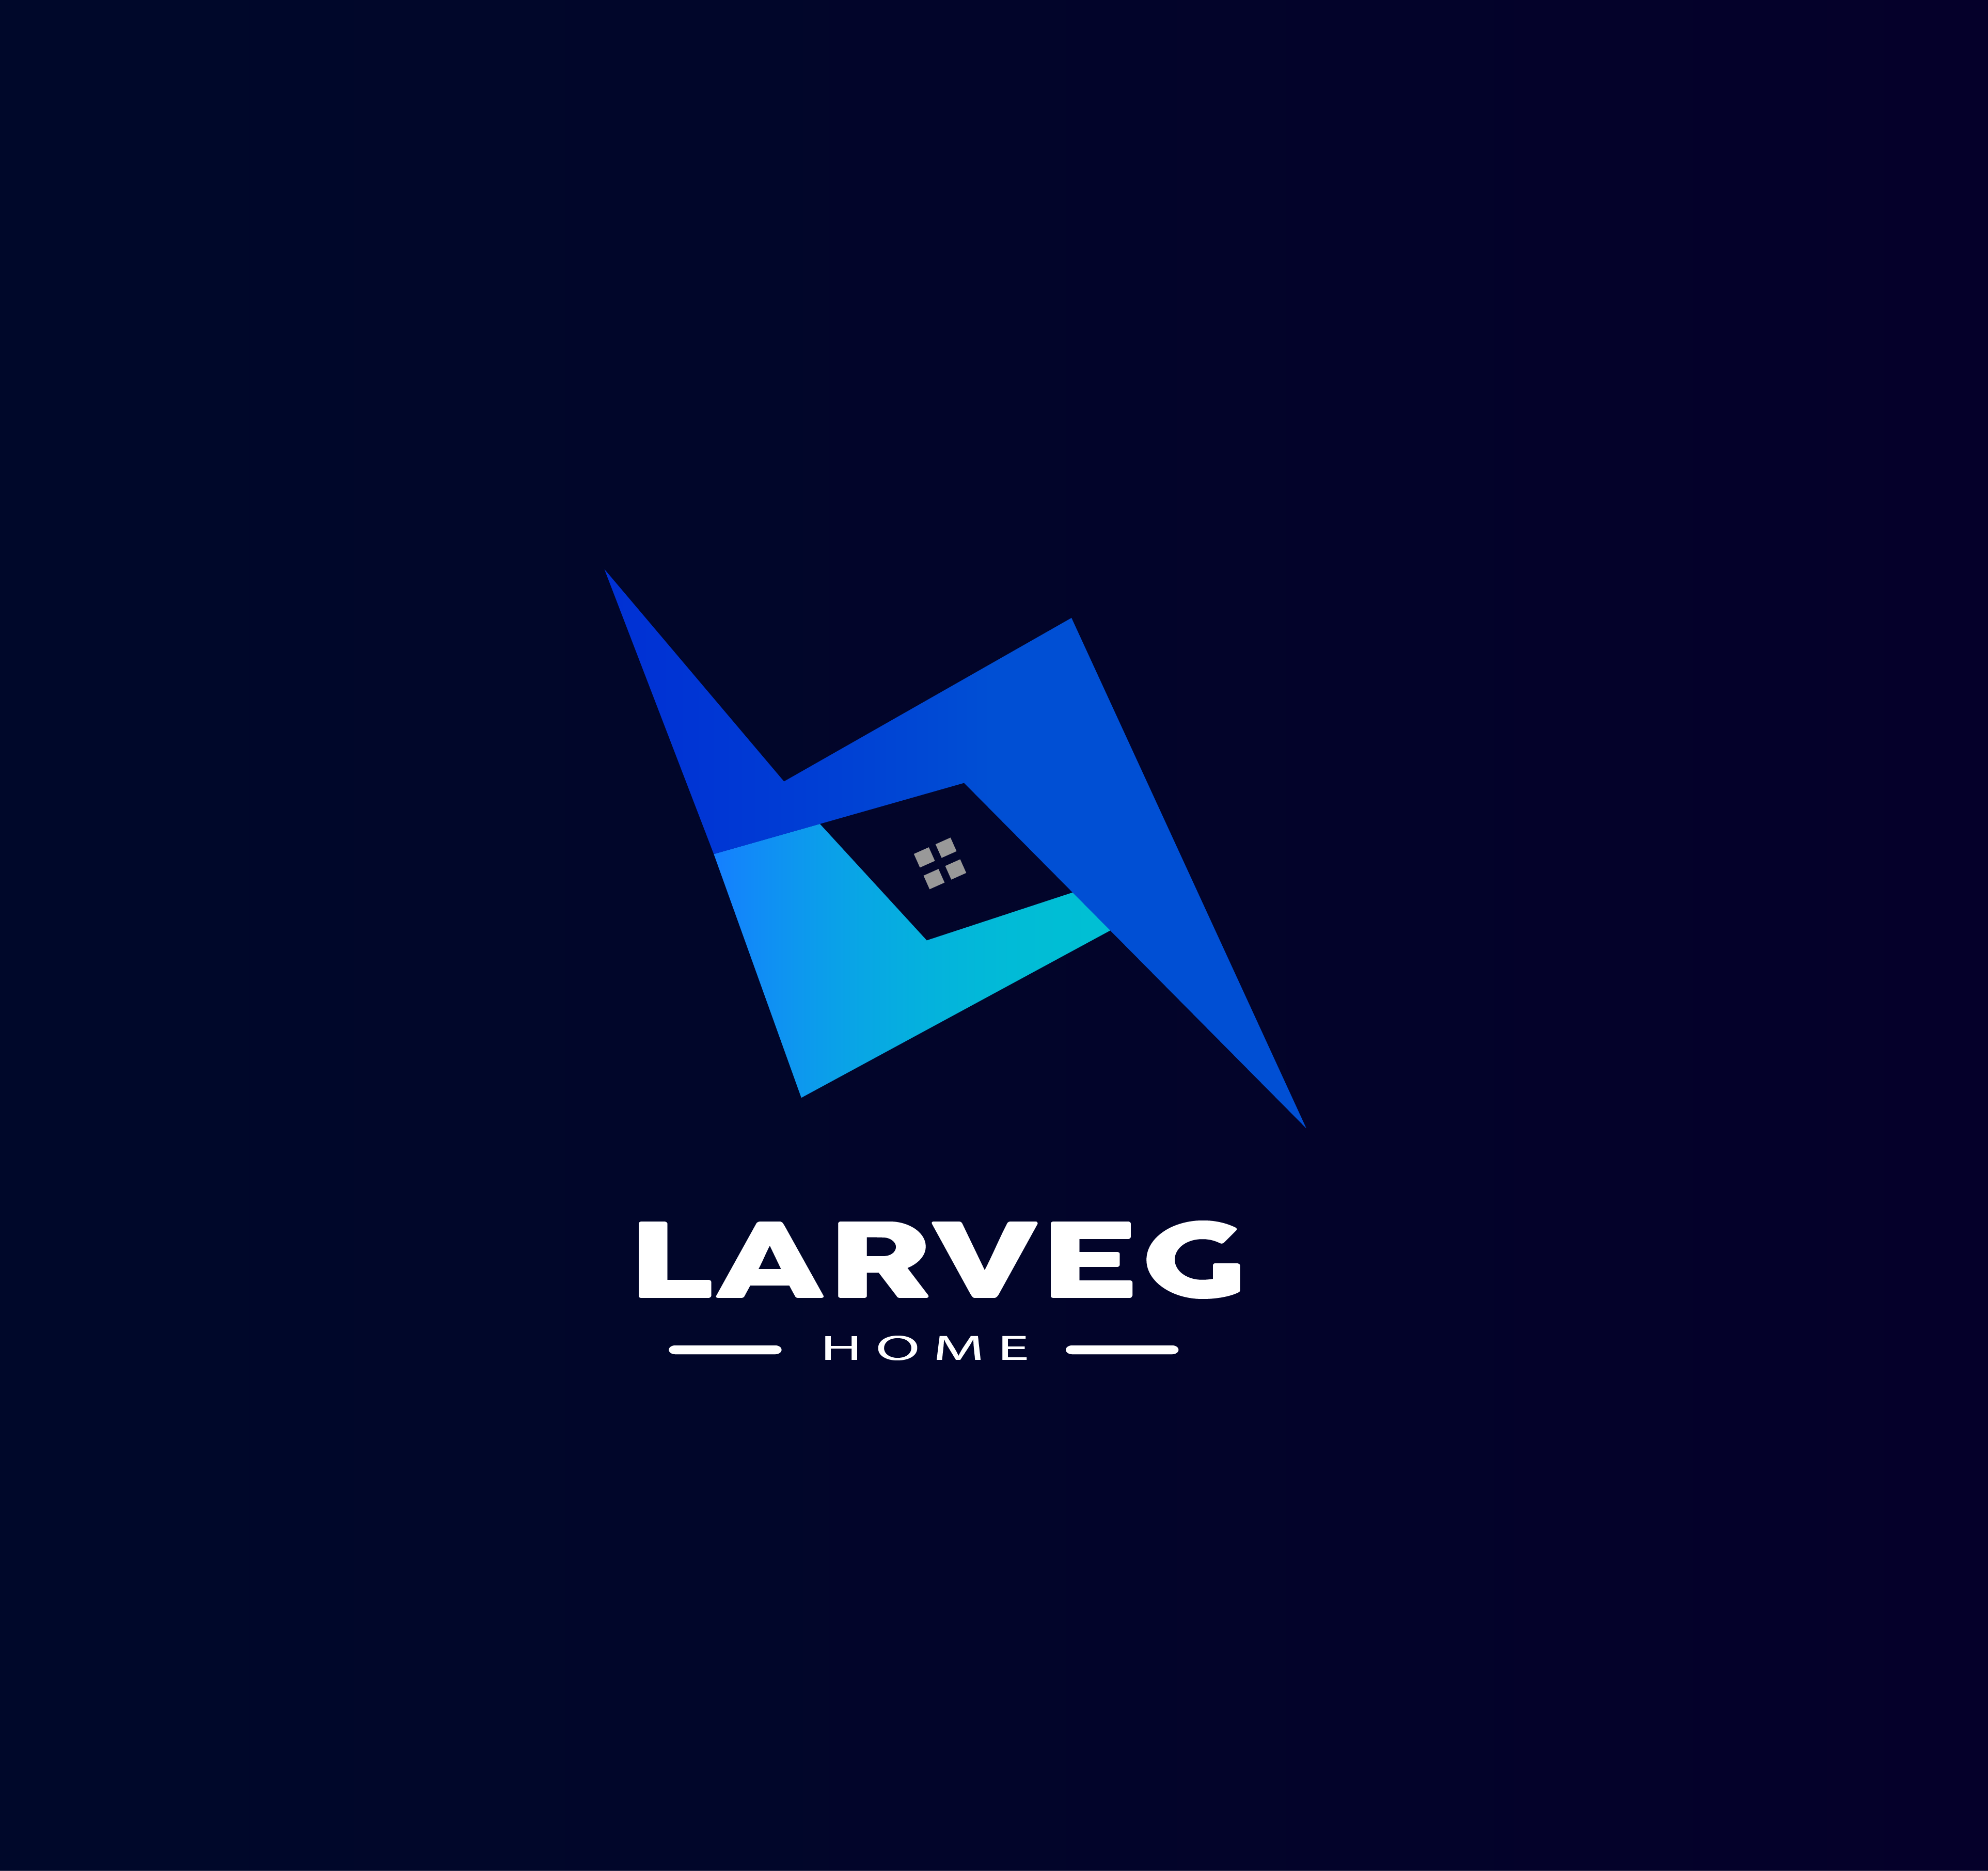 I will design minimalist and modern logo for your business or company